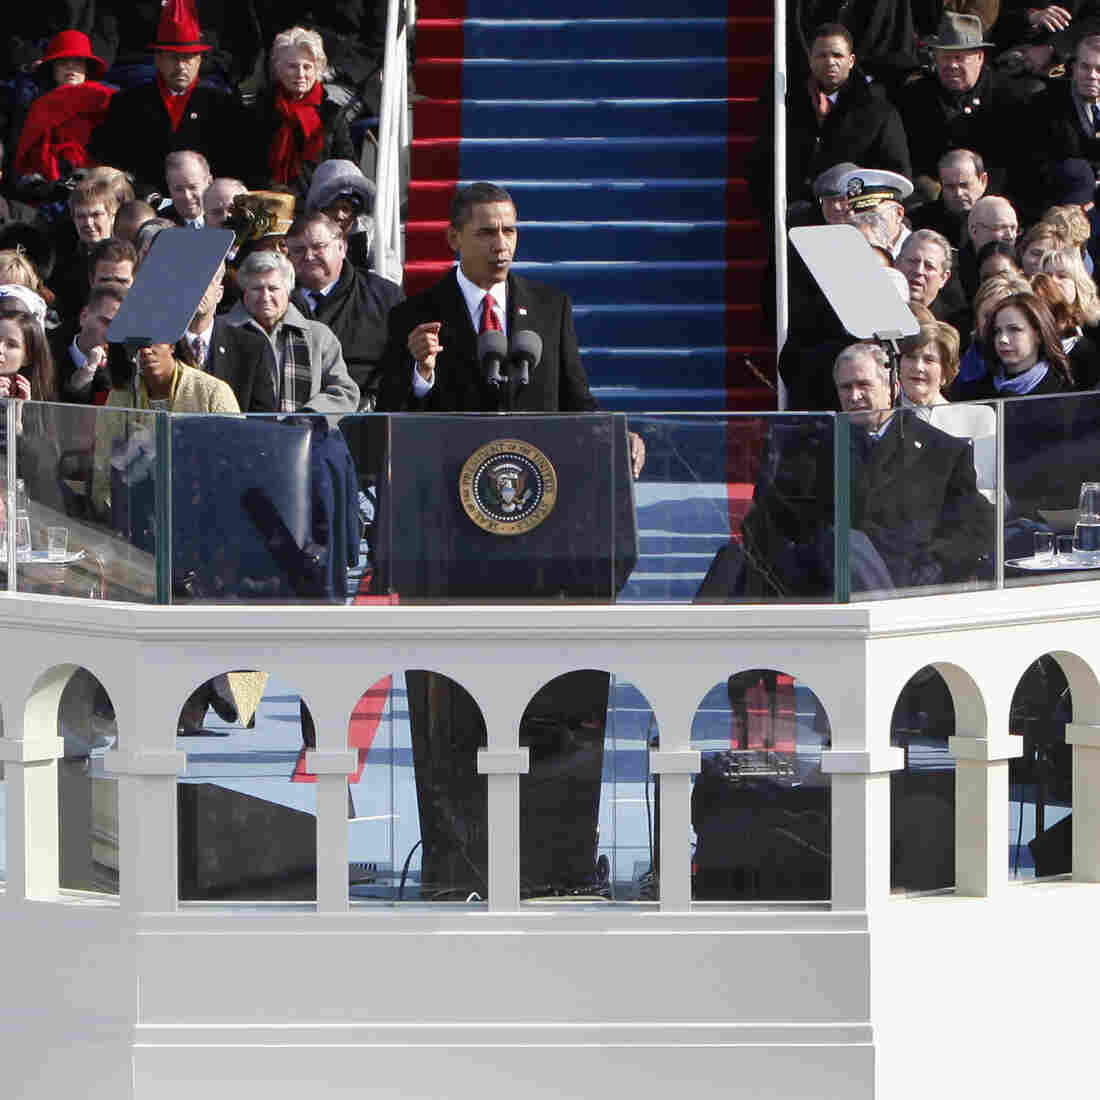 Speechwriters: After Bland First Inaugural, Second Is Tougher For Obama